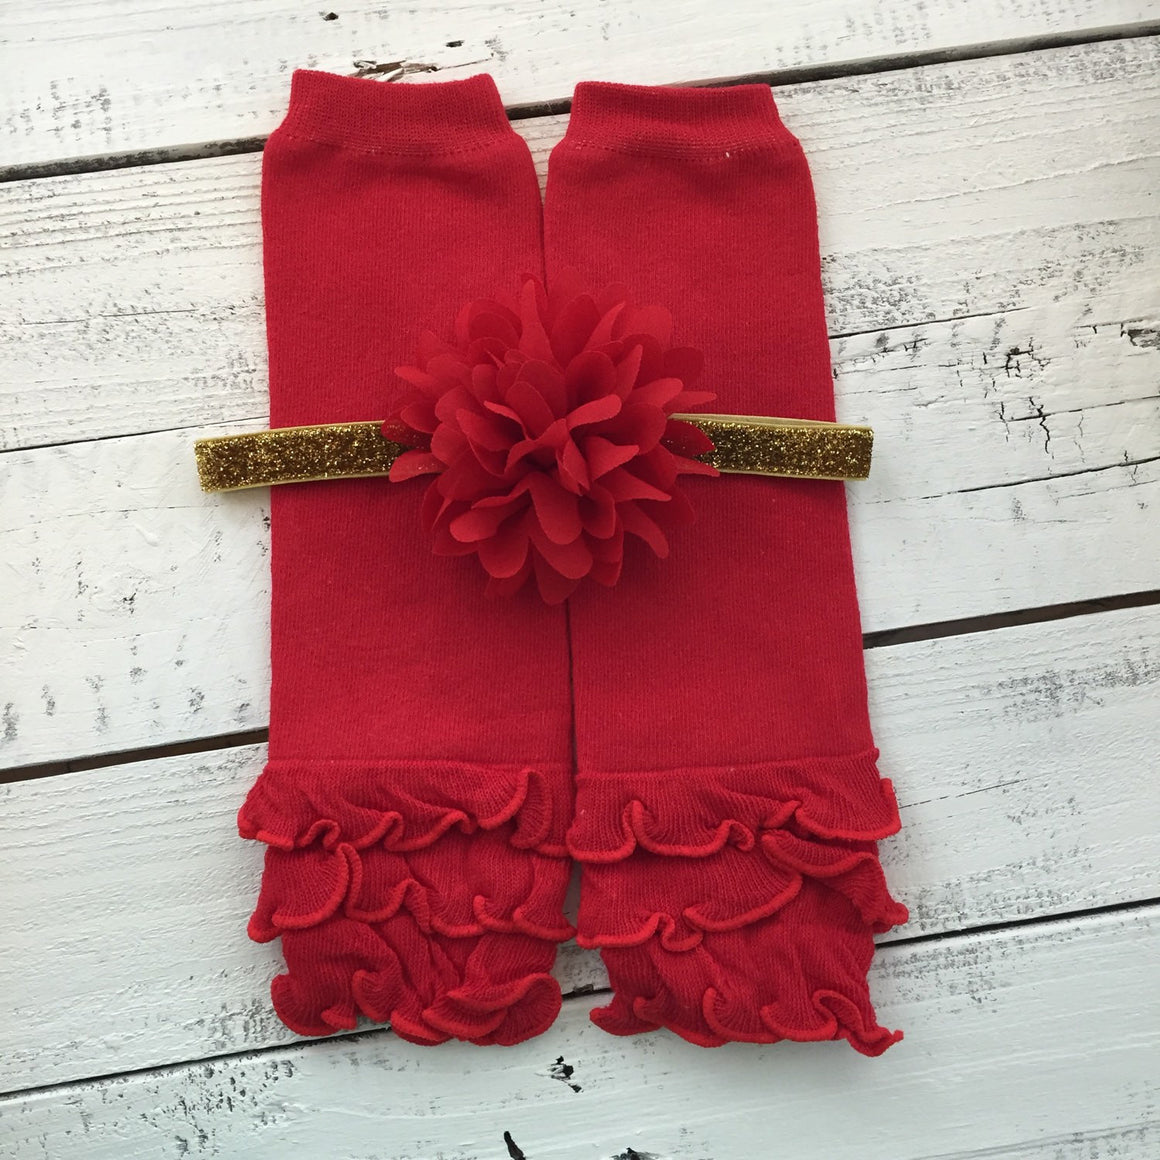 1st Christmas Outfit Set gold glitter shirt red leg warmers glitter headband bow ruffle bloomer tutu skirt diaper bloomers infant baby girl - HoneyLoveBoutique